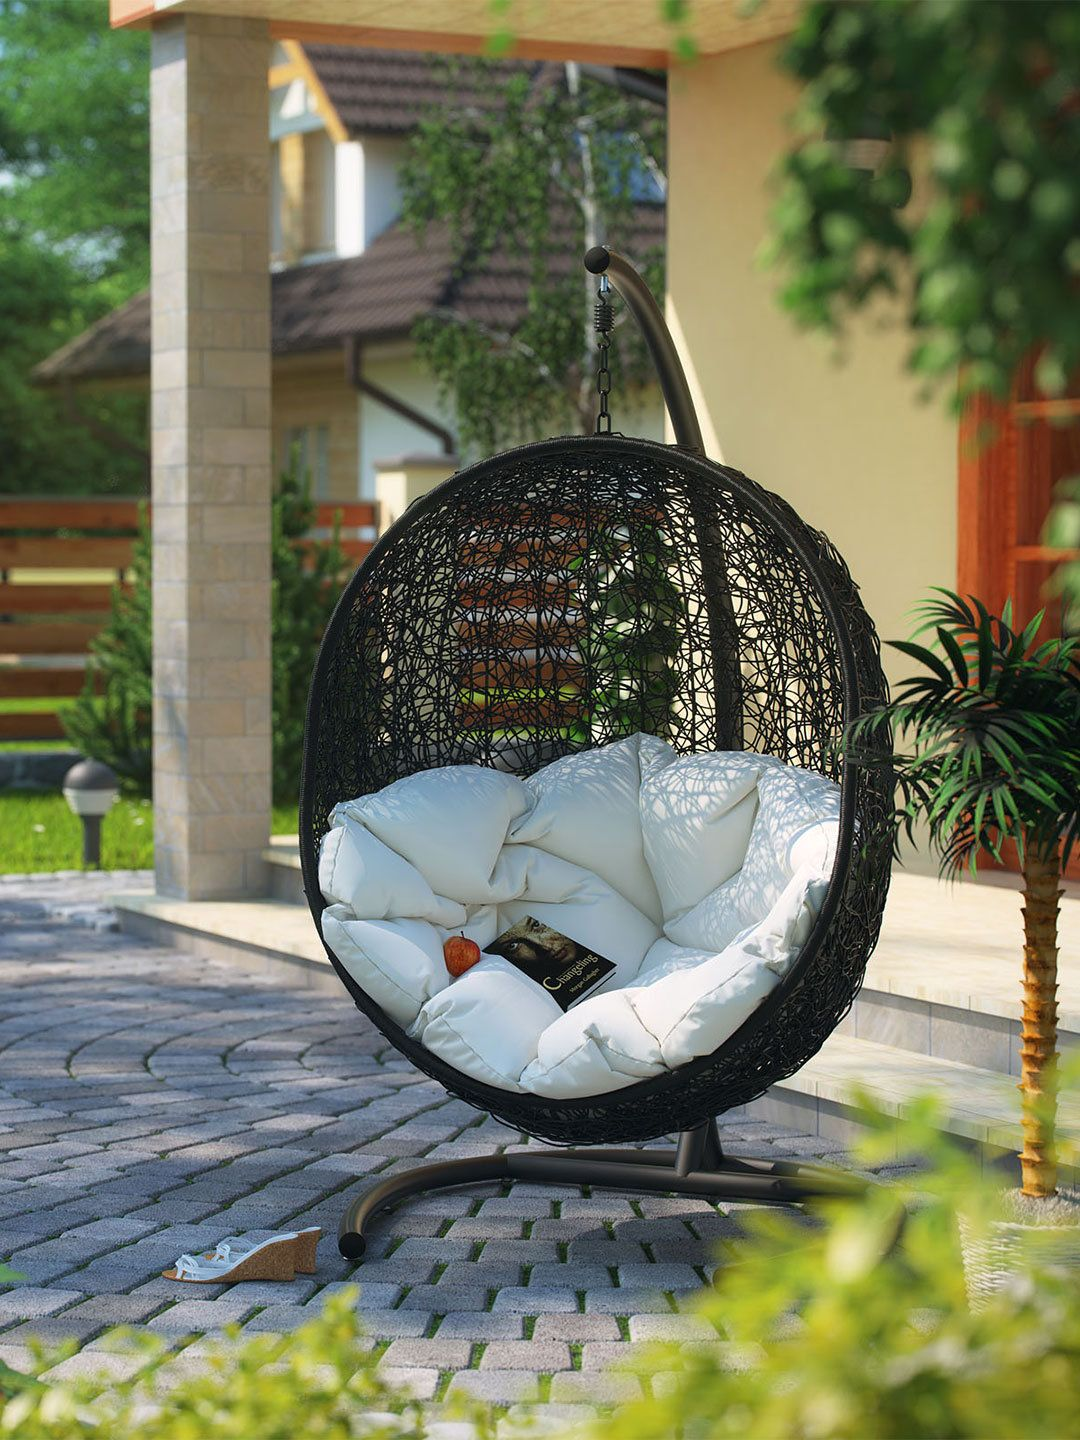 Modway Outdoor - Cocoon Patio Swing Chair #SwingChair & Modway Outdoor - Cocoon Patio Swing Chair #SwingChair | Swing Chair ...